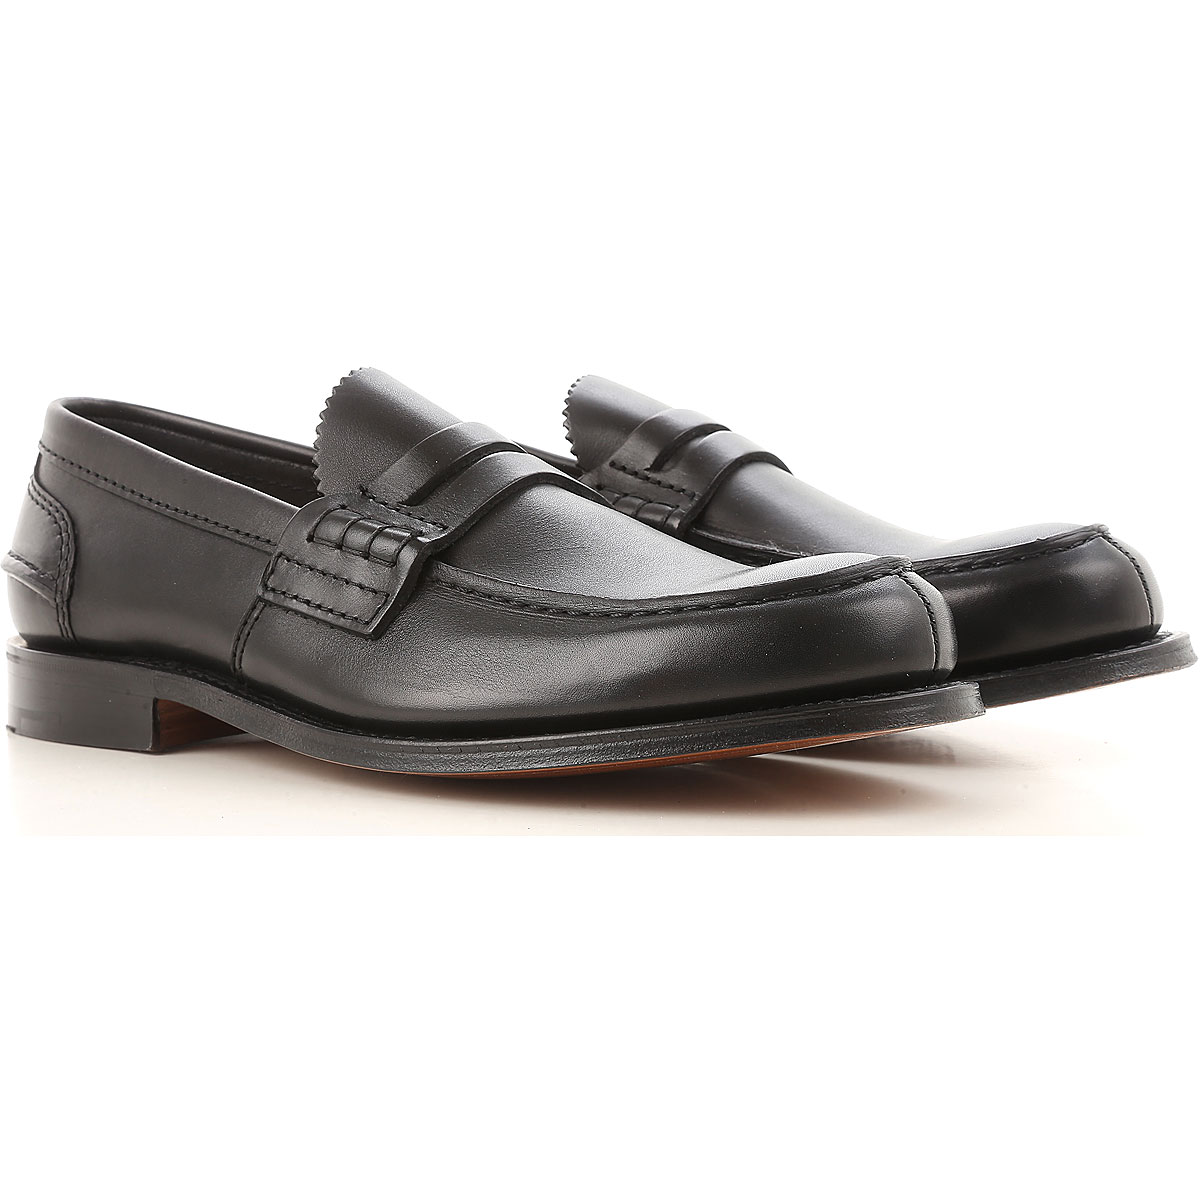 Image of Church's Loafers for Men, Black, Leather, 2017, 10 11 7.5 8 8.5 9 9.5